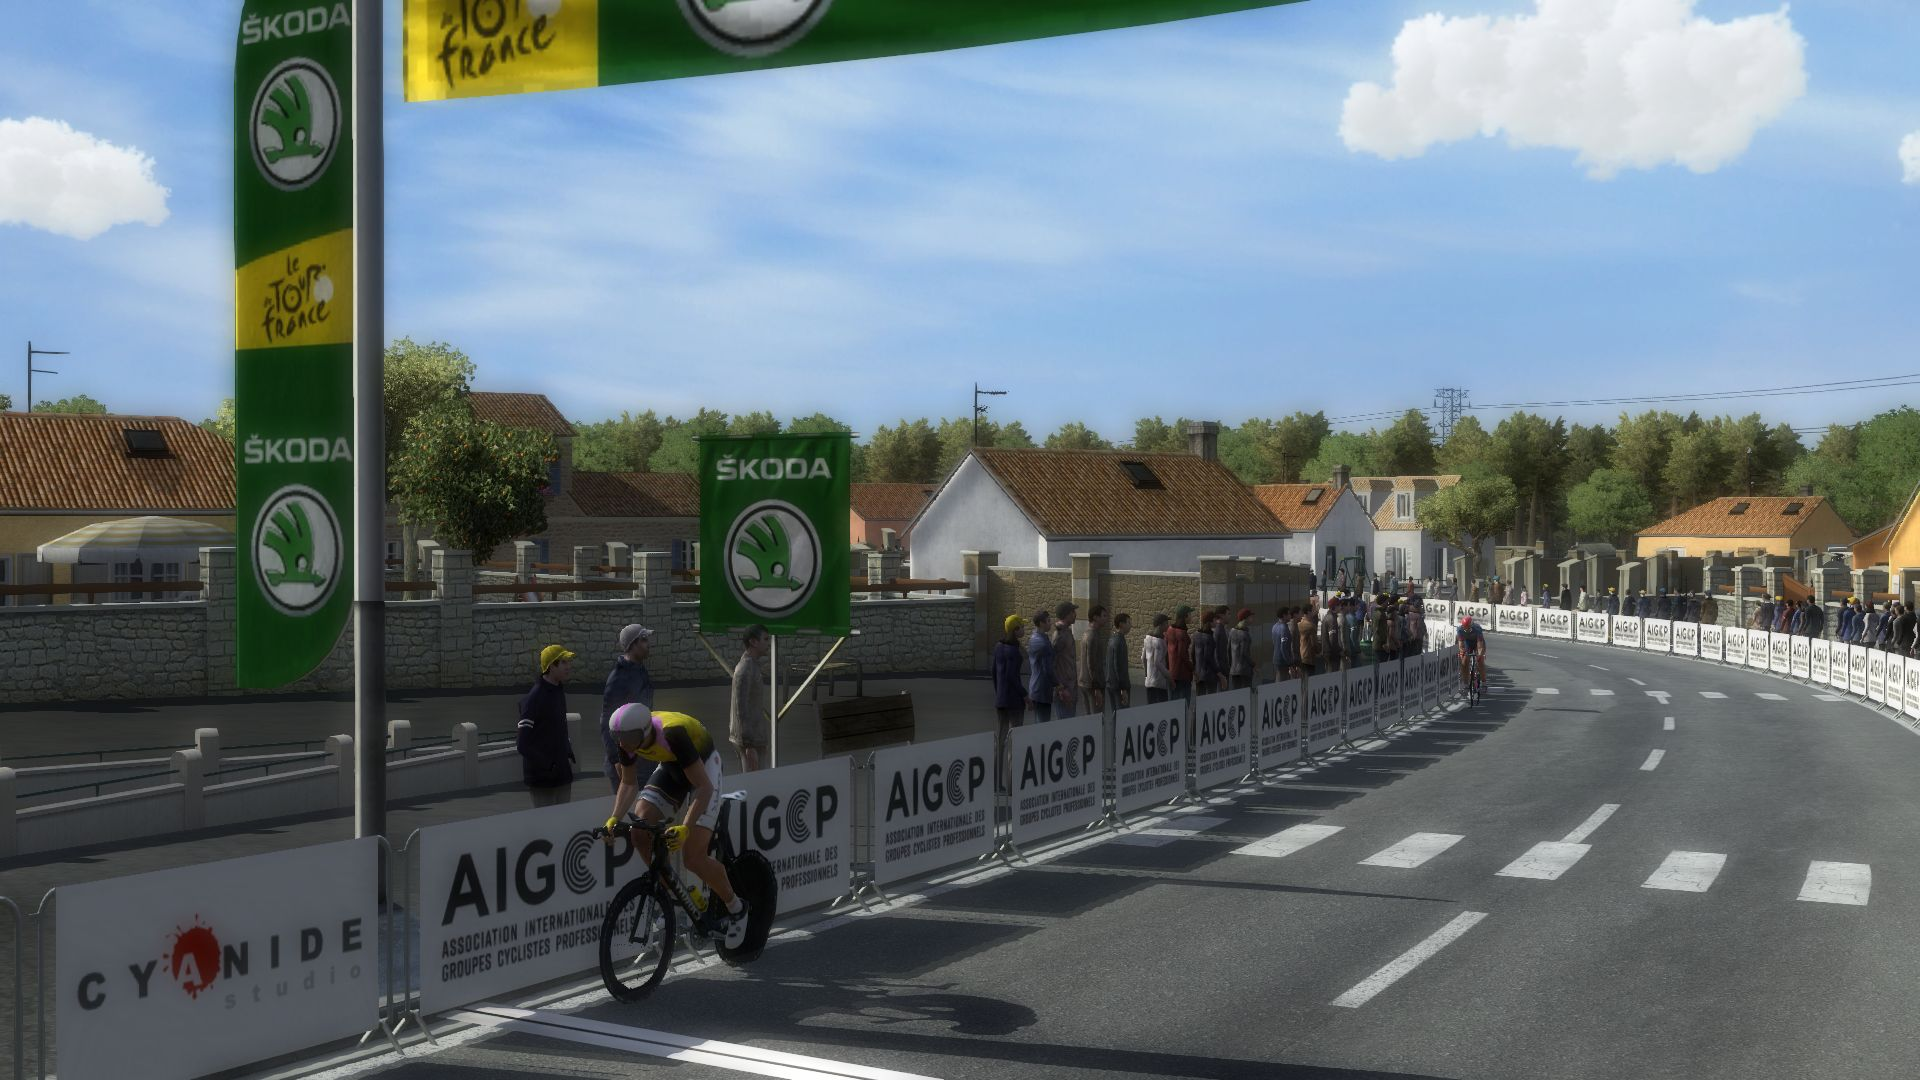 pcmdaily.com/images/mg/2019/Races/HC/Slovenie/mg19_slo_s04_04.jpg